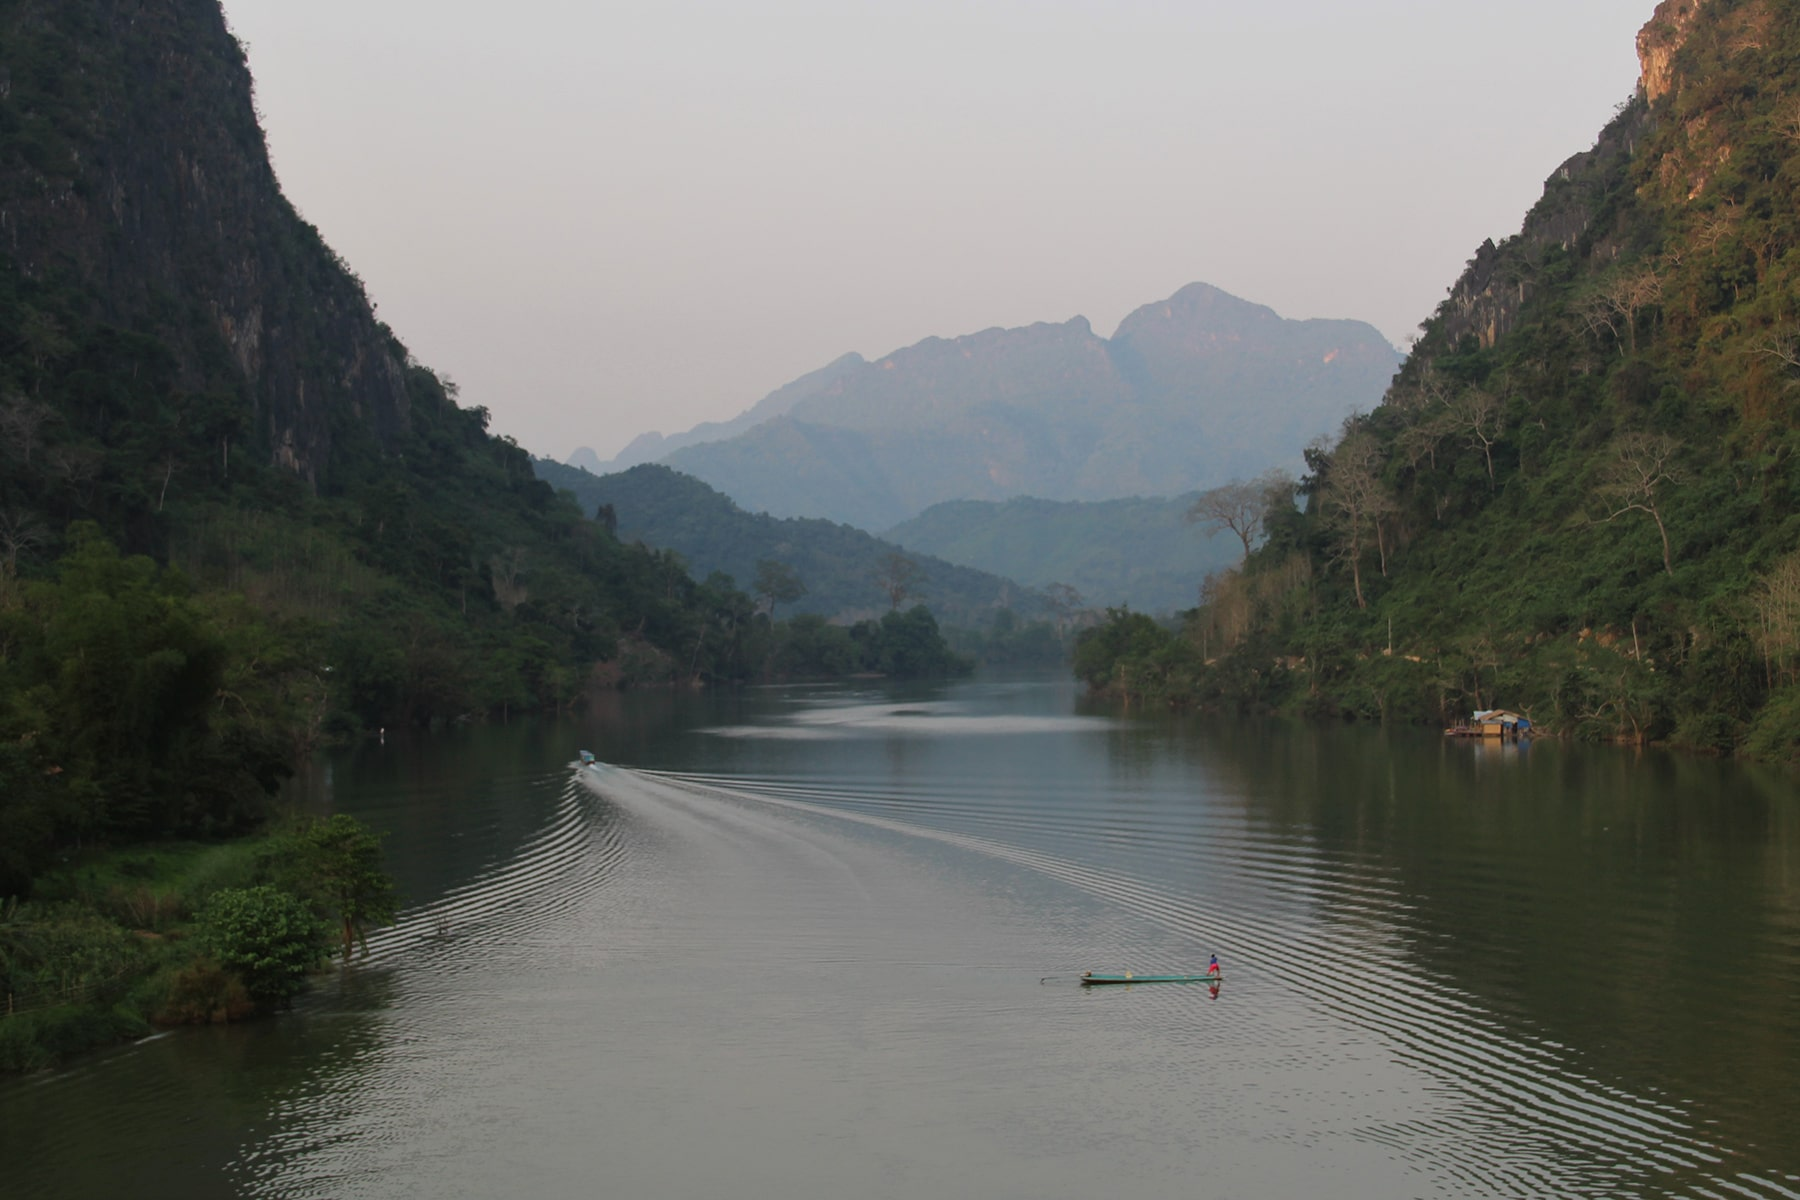 River and mountains in Nong Khiaw Laos